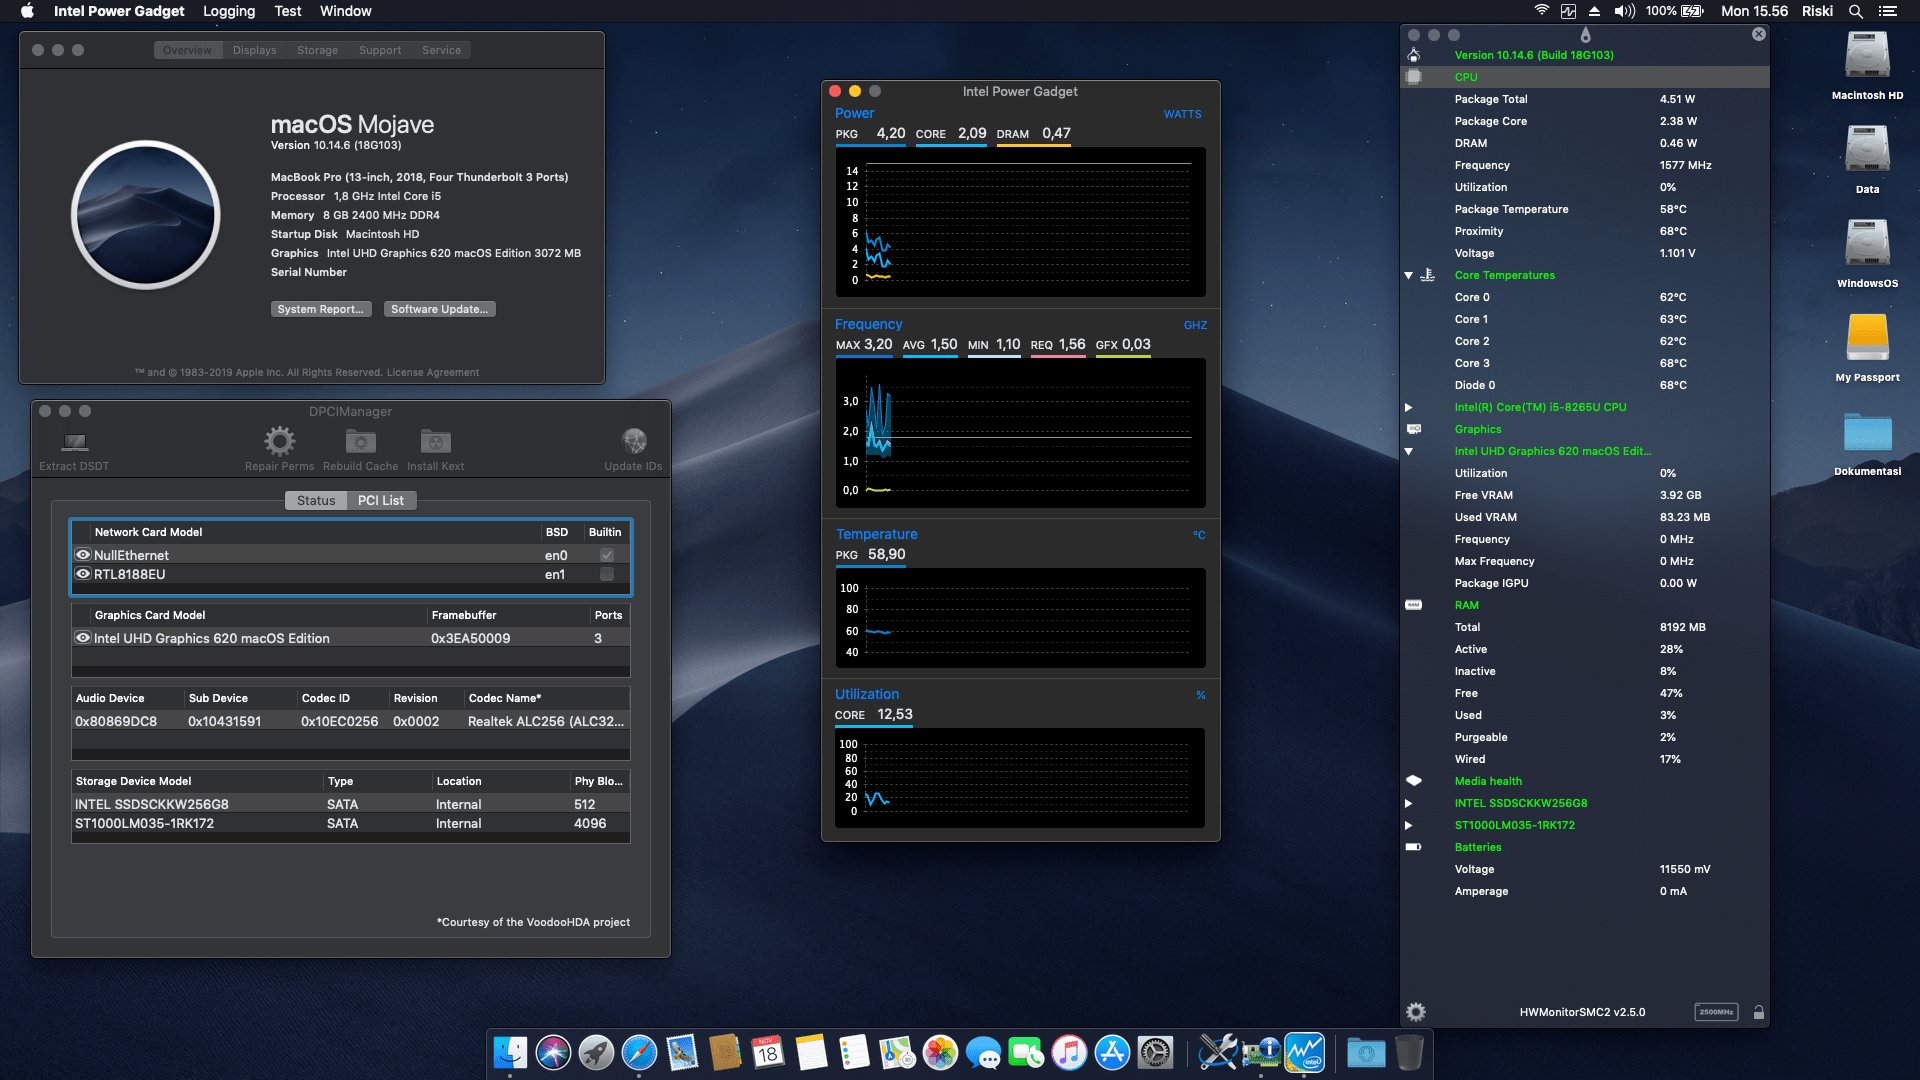 Success Hackintosh macOS Mojave 10.14.6 Build 18G103 at Asus VivoBook S14 S430FN